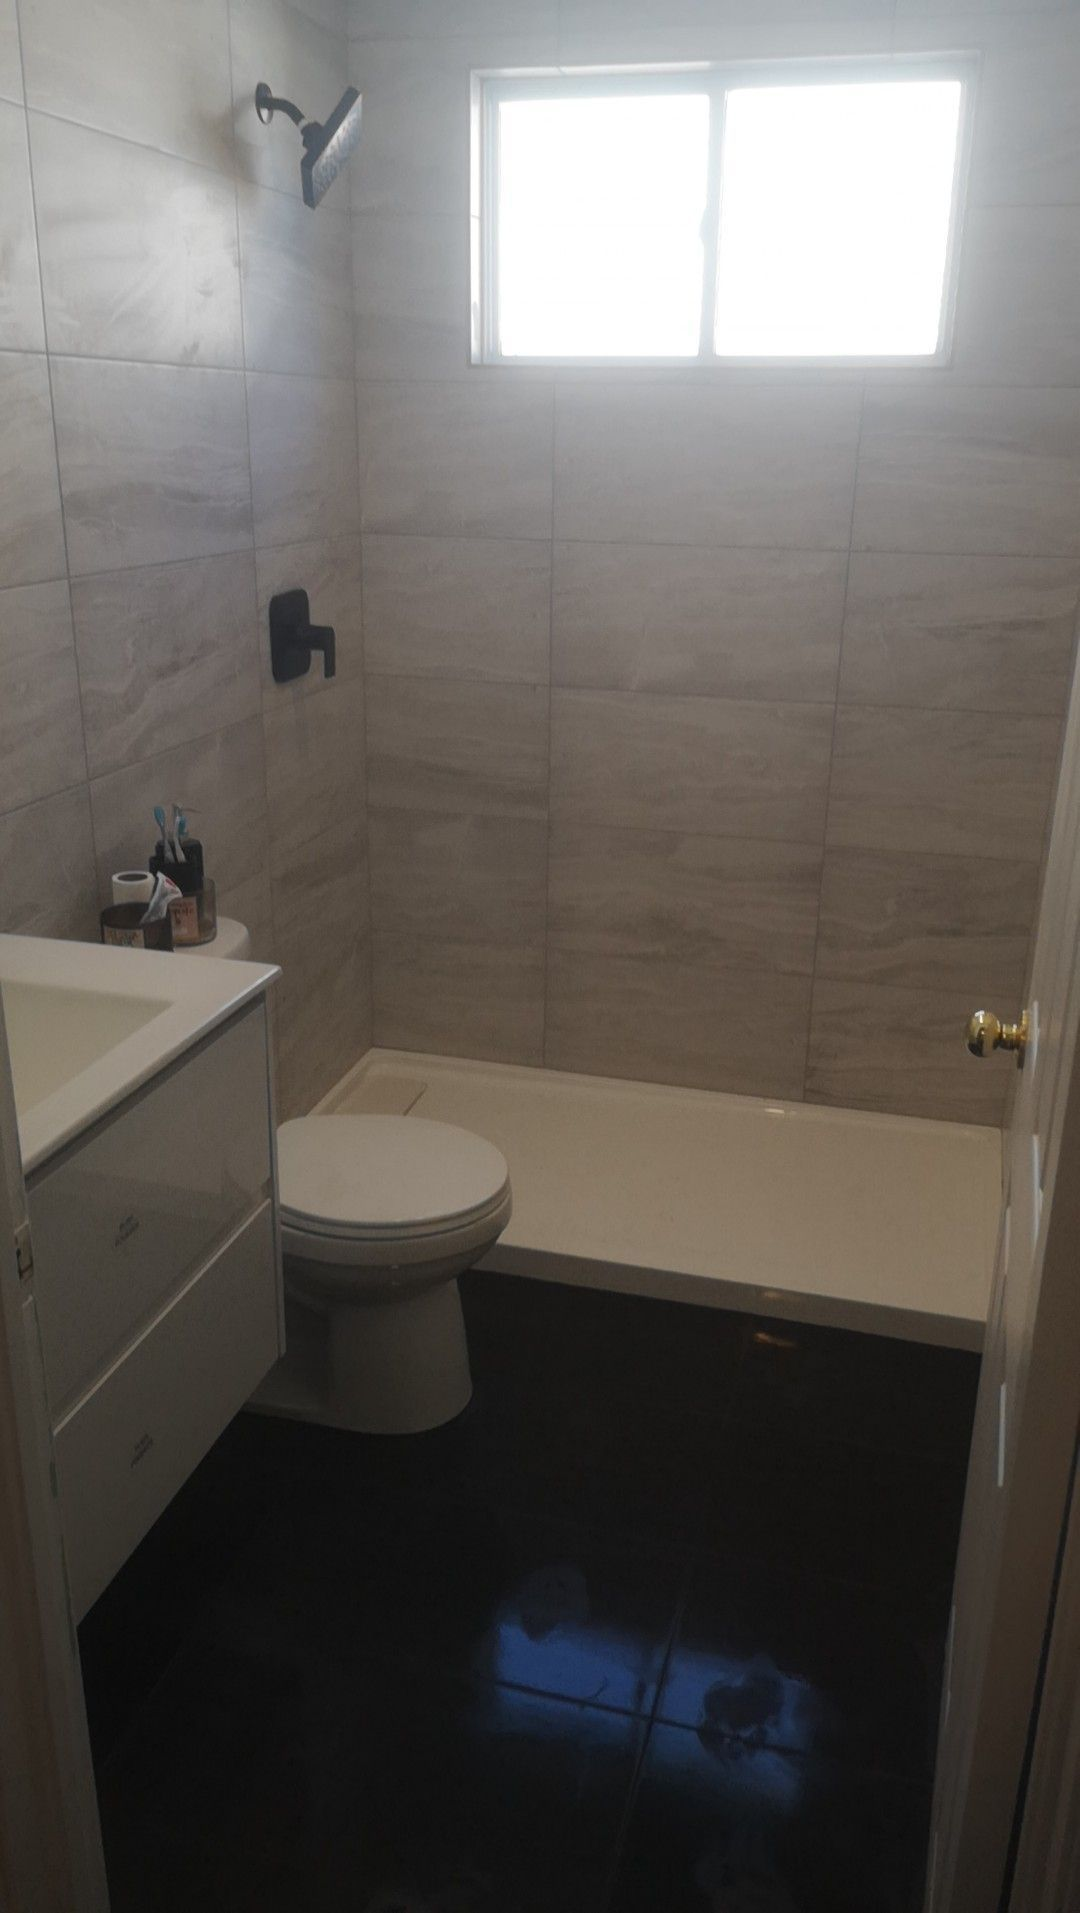 Small Bathroom I Tiled Recently Floor To Ceiling 12x24 Tile In 12x24 Tile In Sma 12x24 Bathroom In 2020 Modern Bathroom Remodel Small Bathroom Brown Tile Bathroom